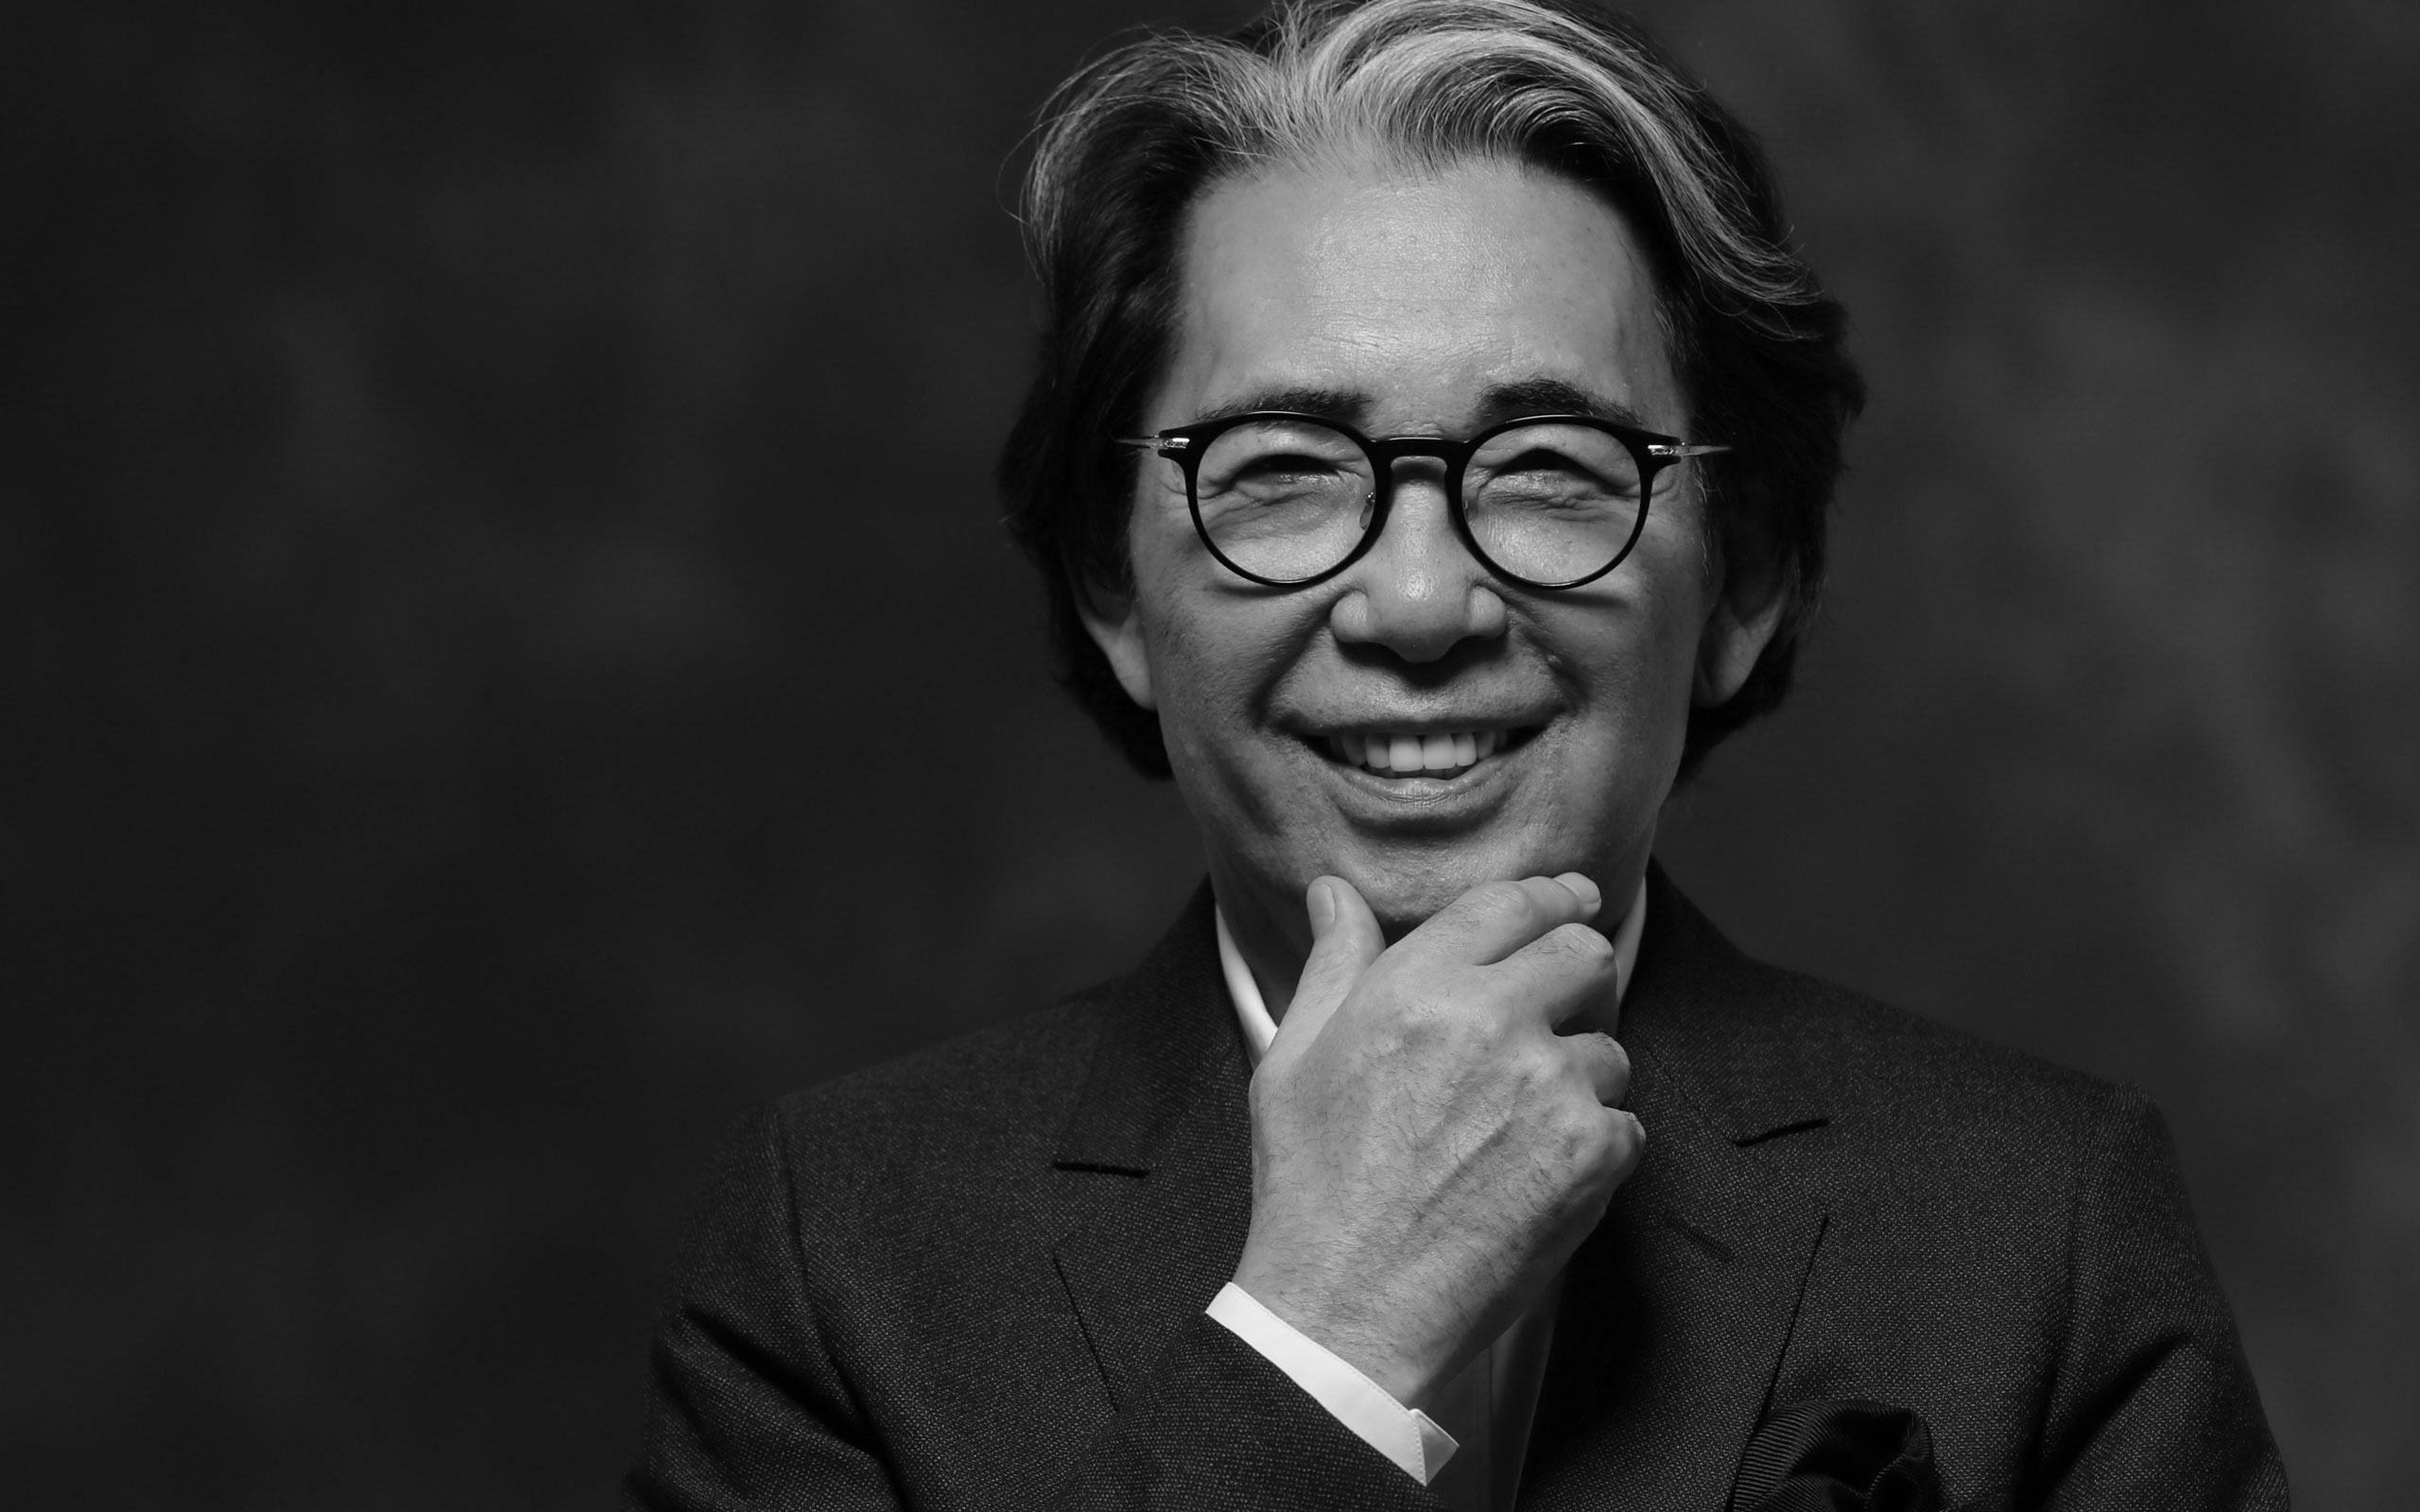 Interview With The Founder Of Kenzo, Kenzo Takada